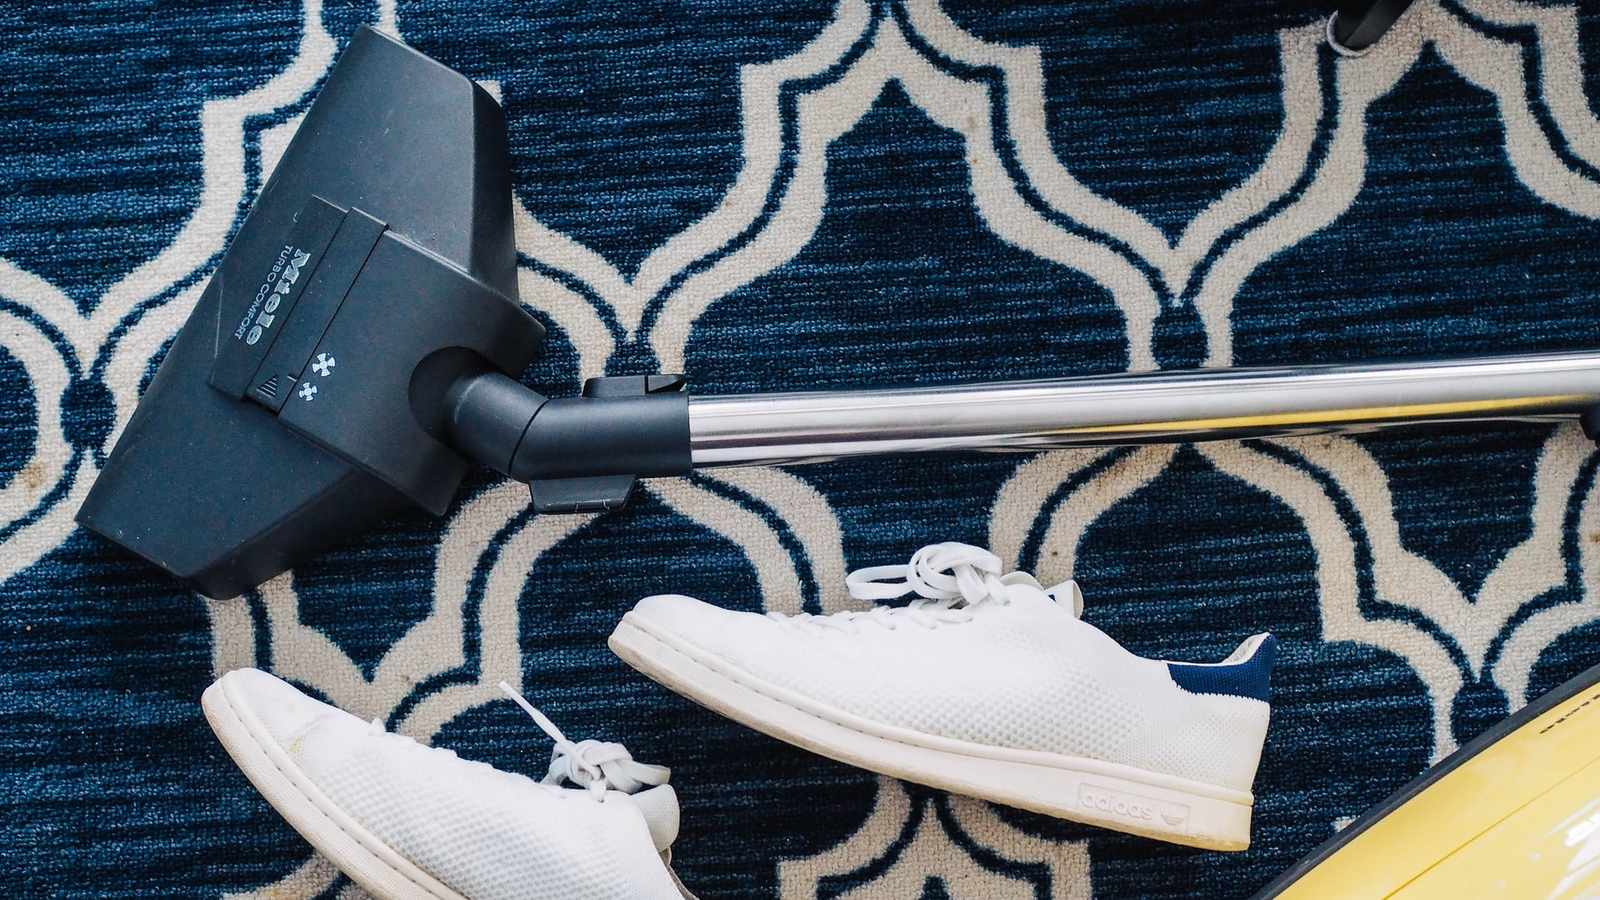 9 places to vacuum in your home